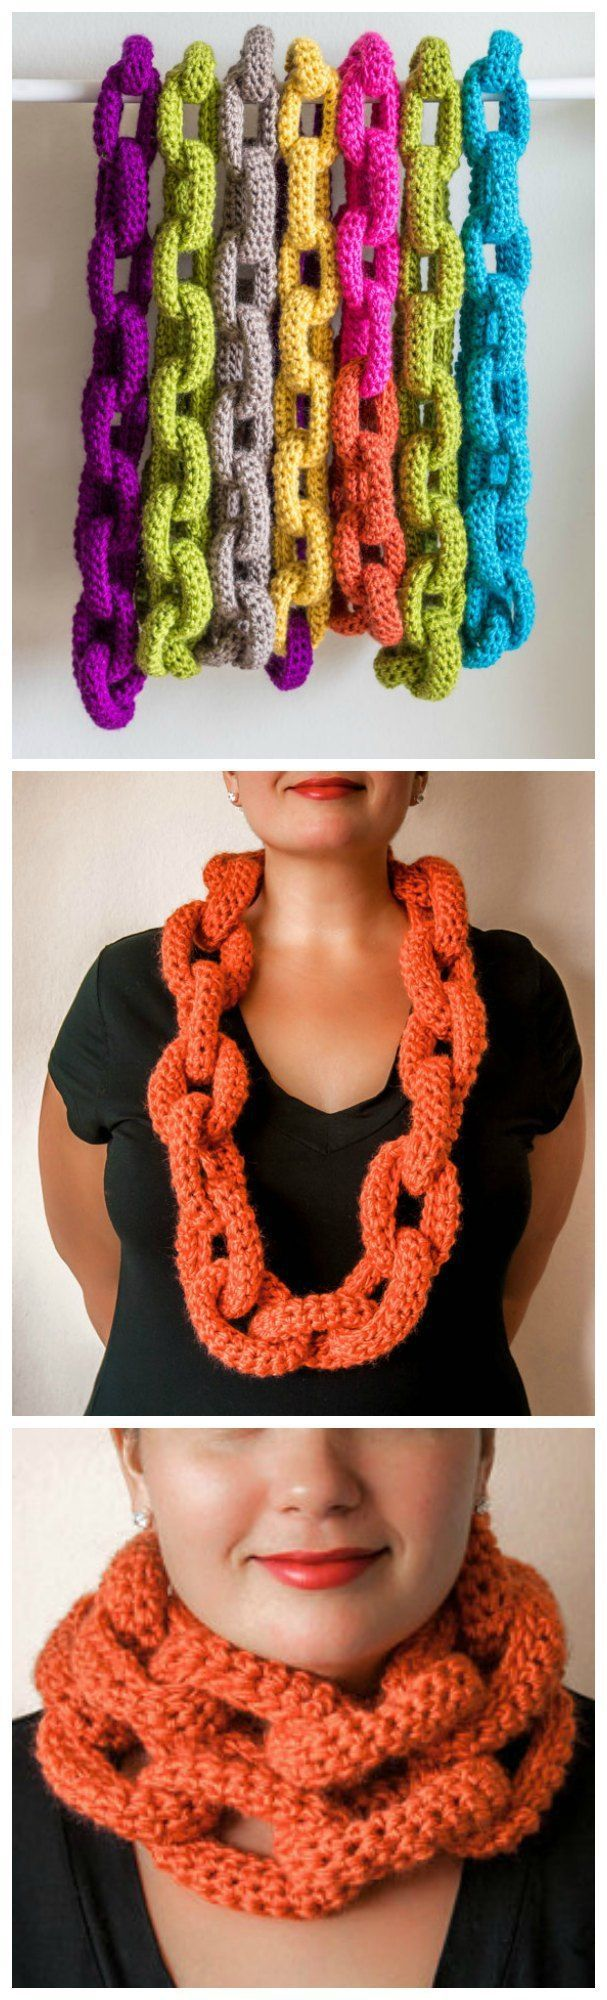 Crochet pattern for this chain link scarf or cowl.